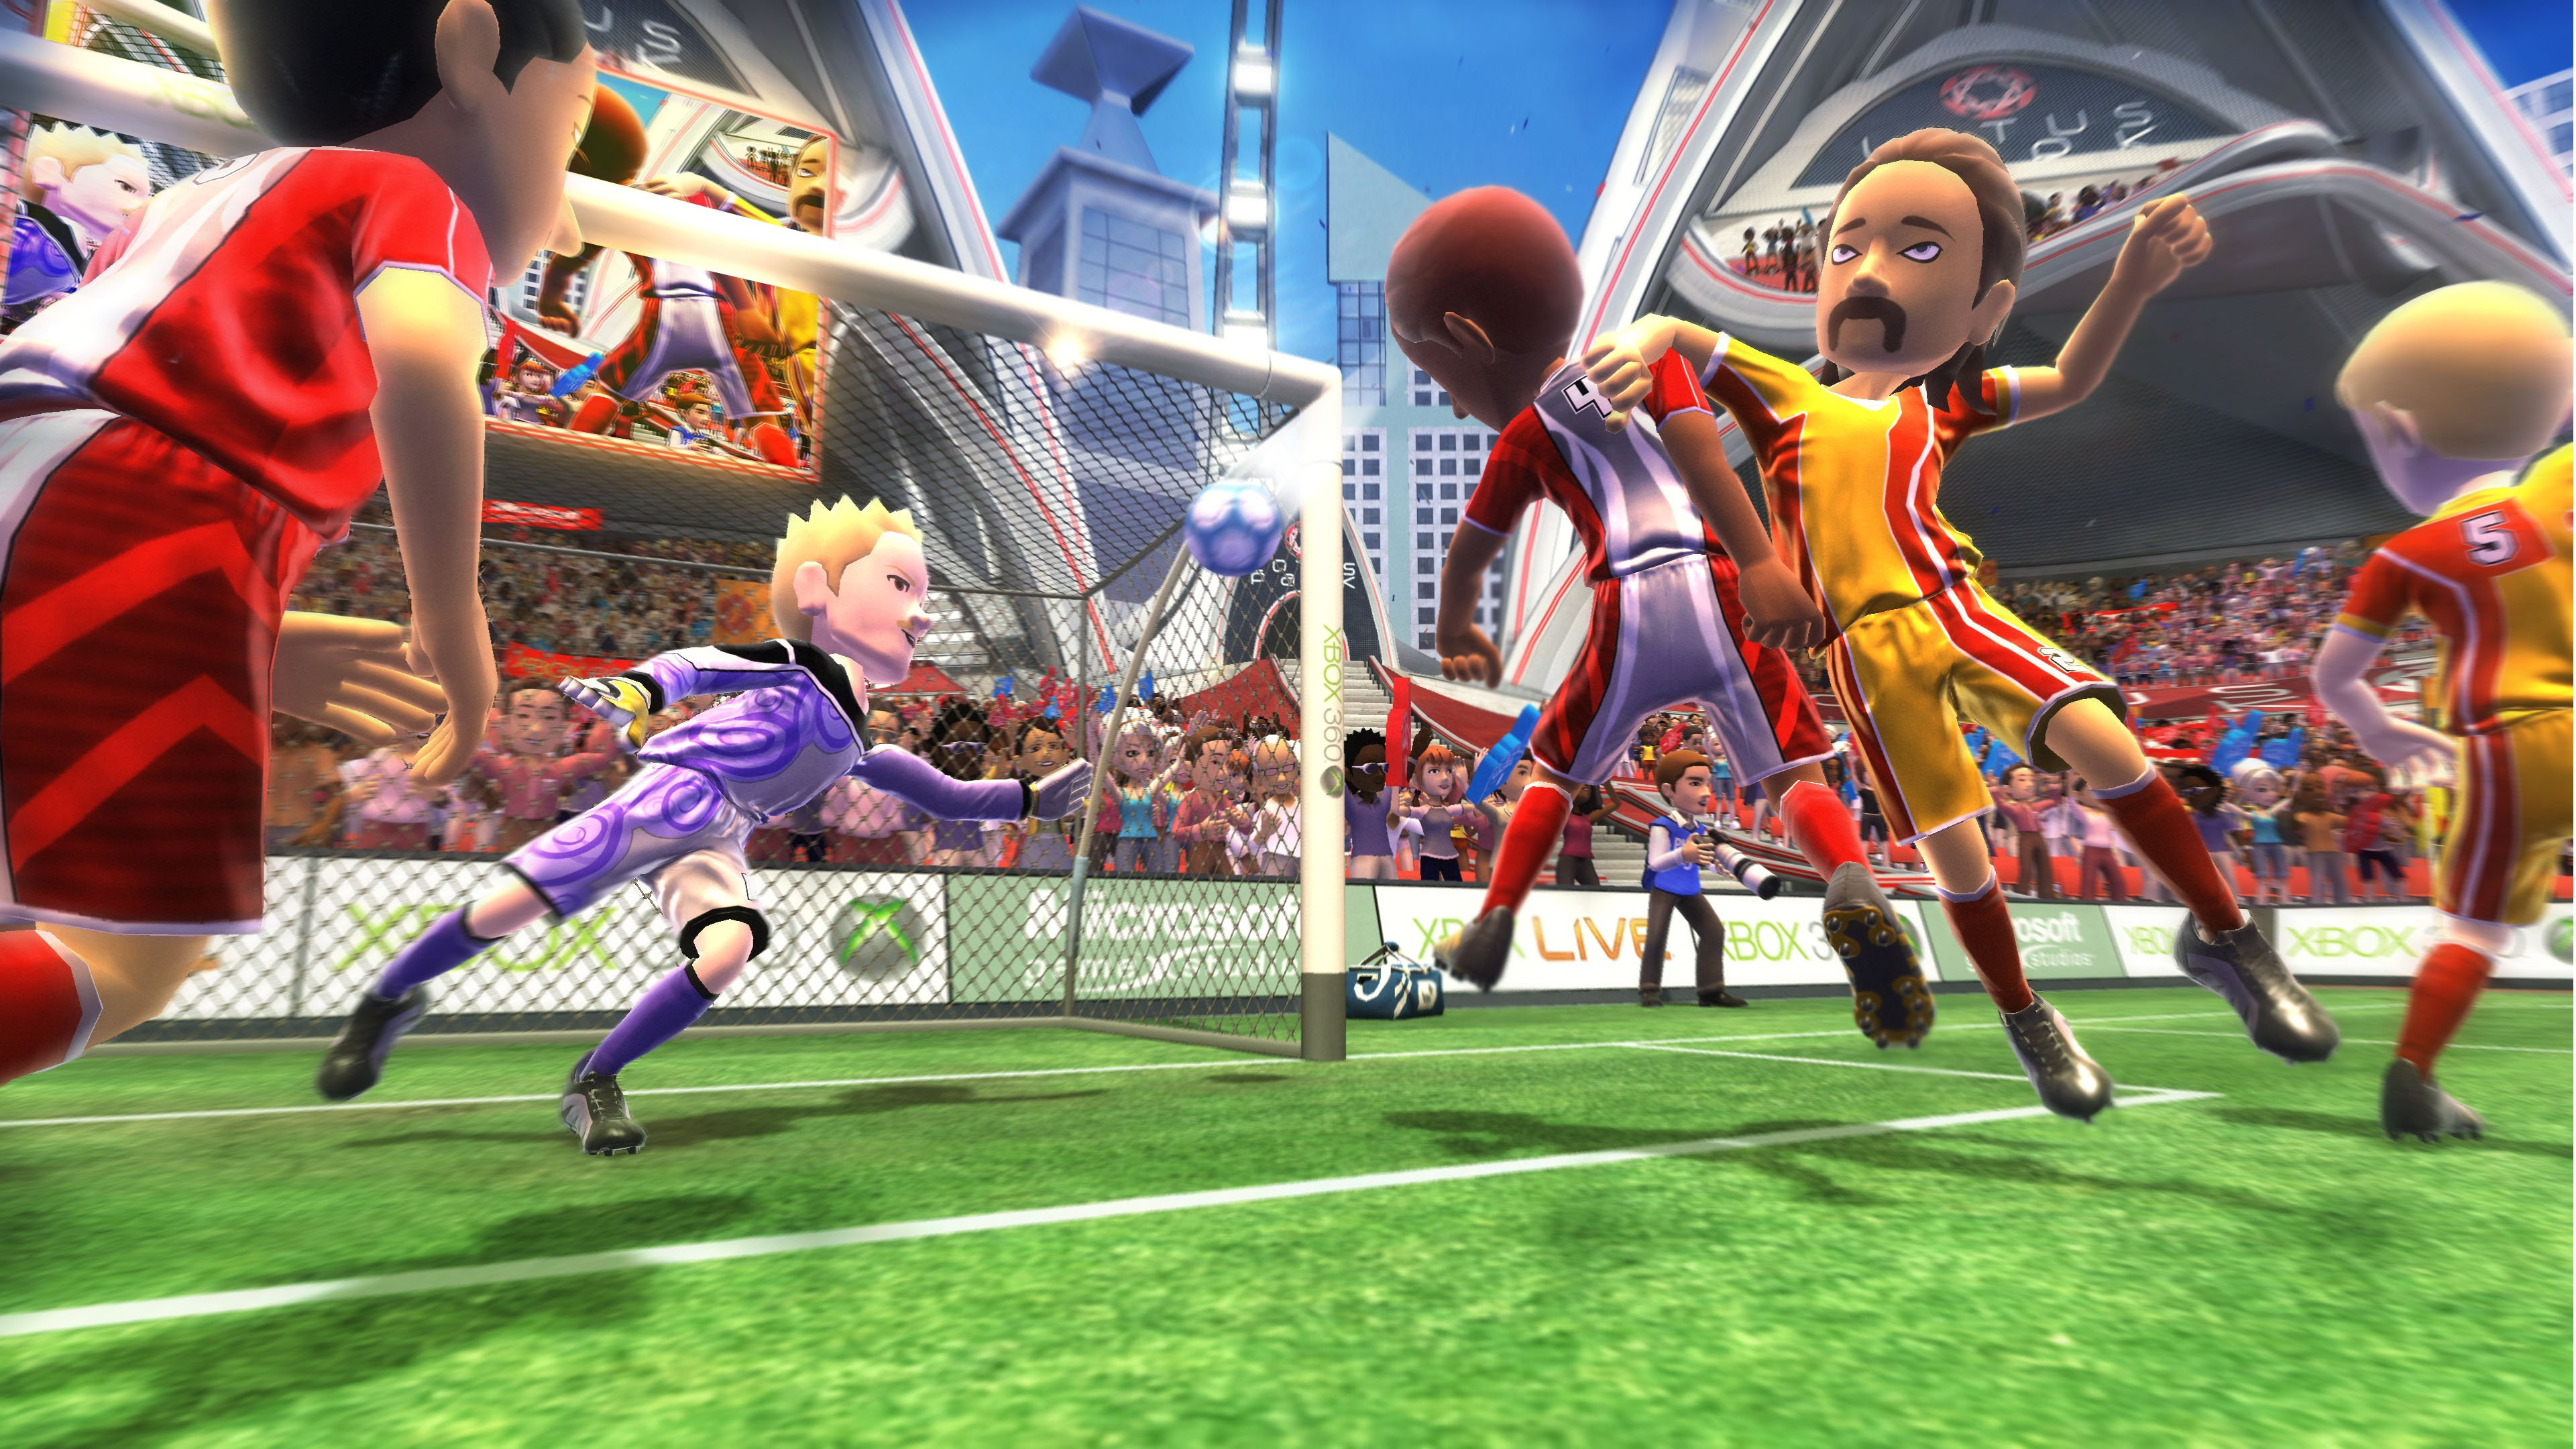 Sports Games For Xbox 1 : Kinect sports soccer baseball football tennis track